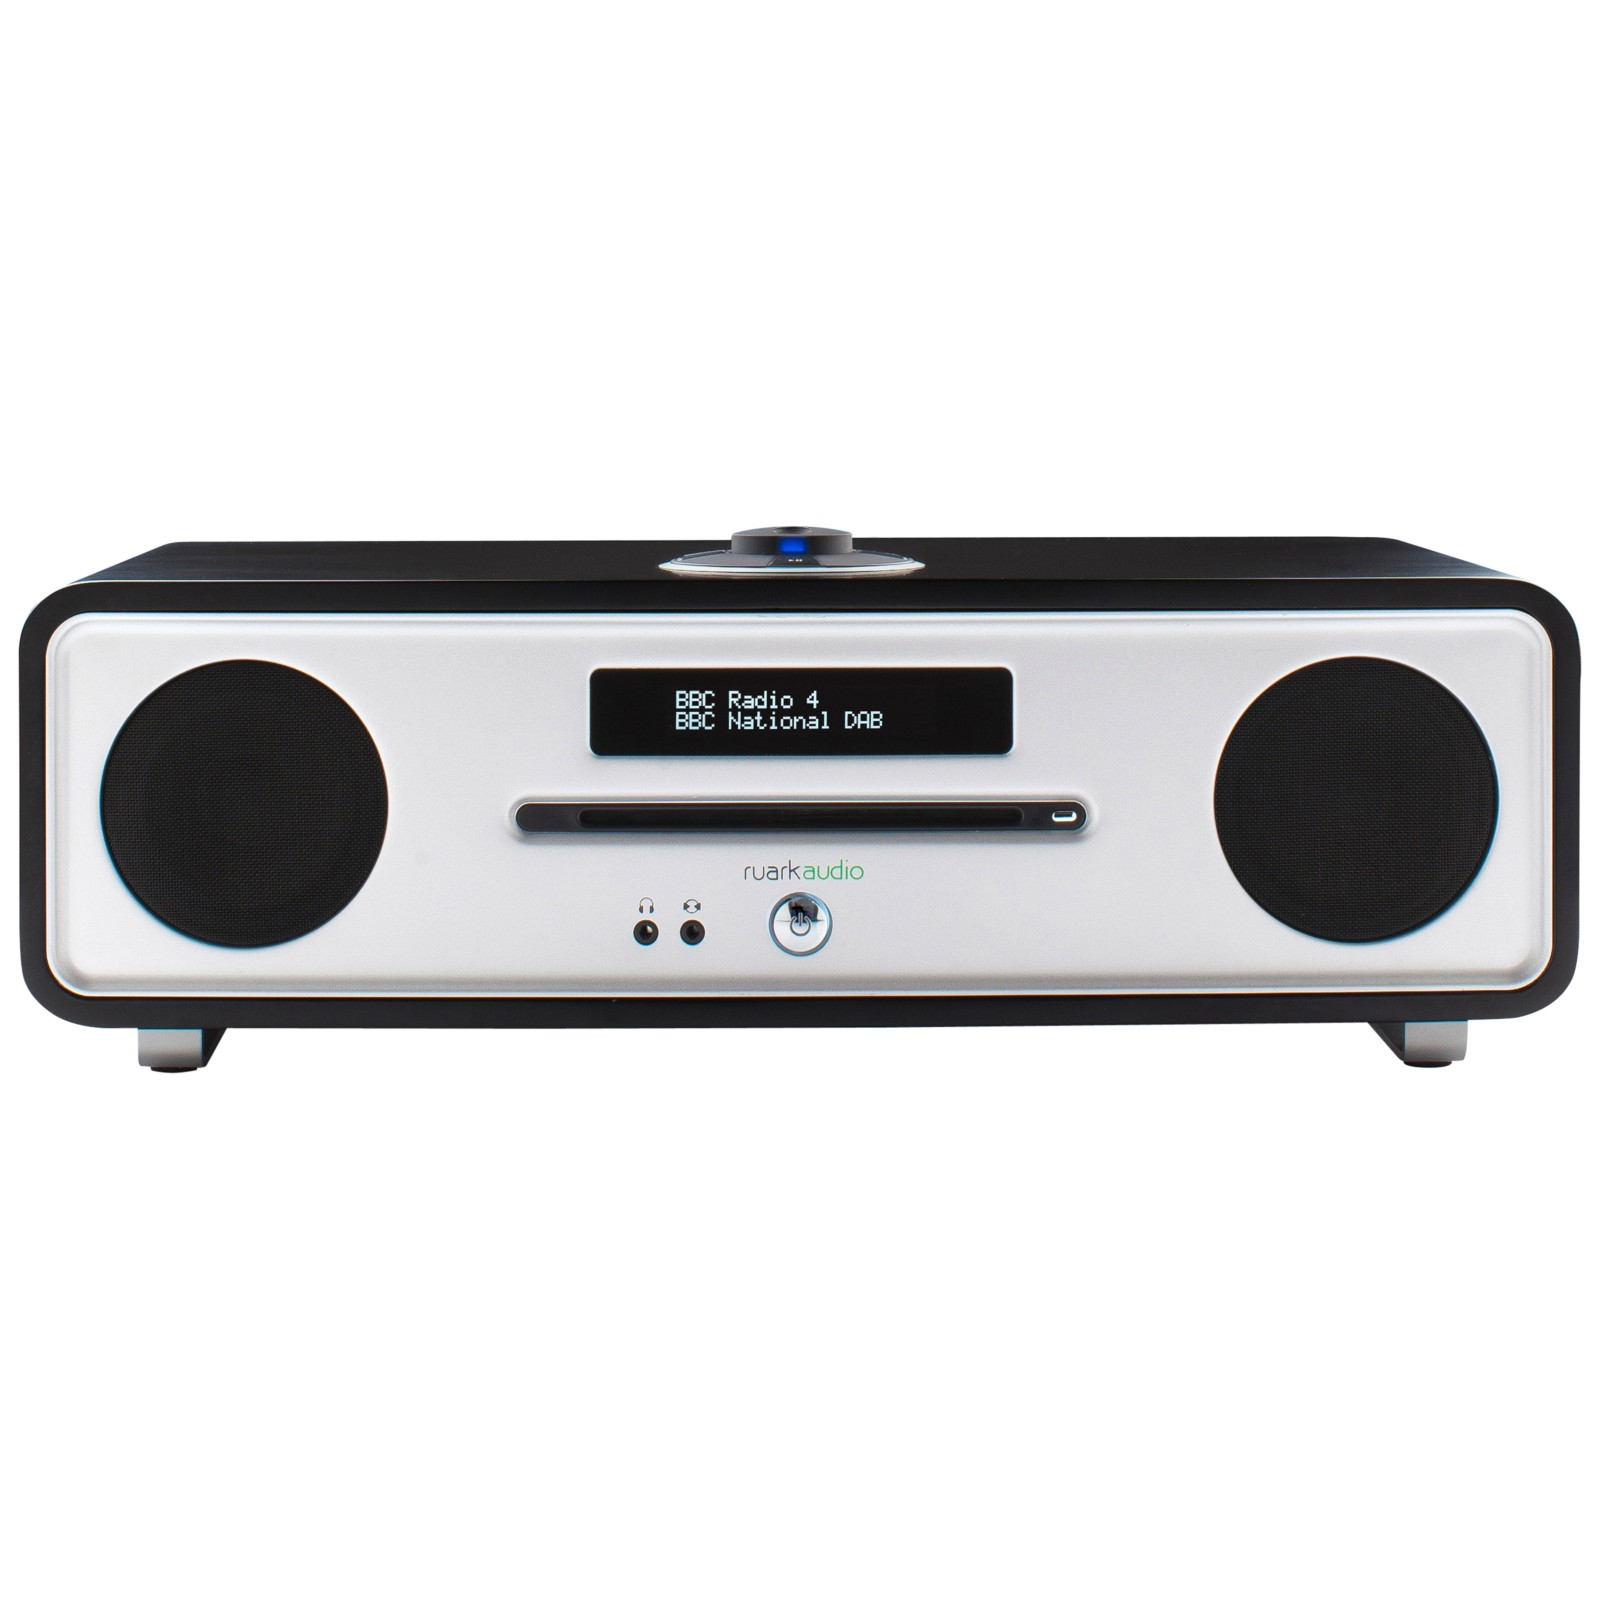 Ruark R4 MK3 DAB/DAB+/FM/CD Bluetooth All-In-One Music System with OLED Display Soft Black